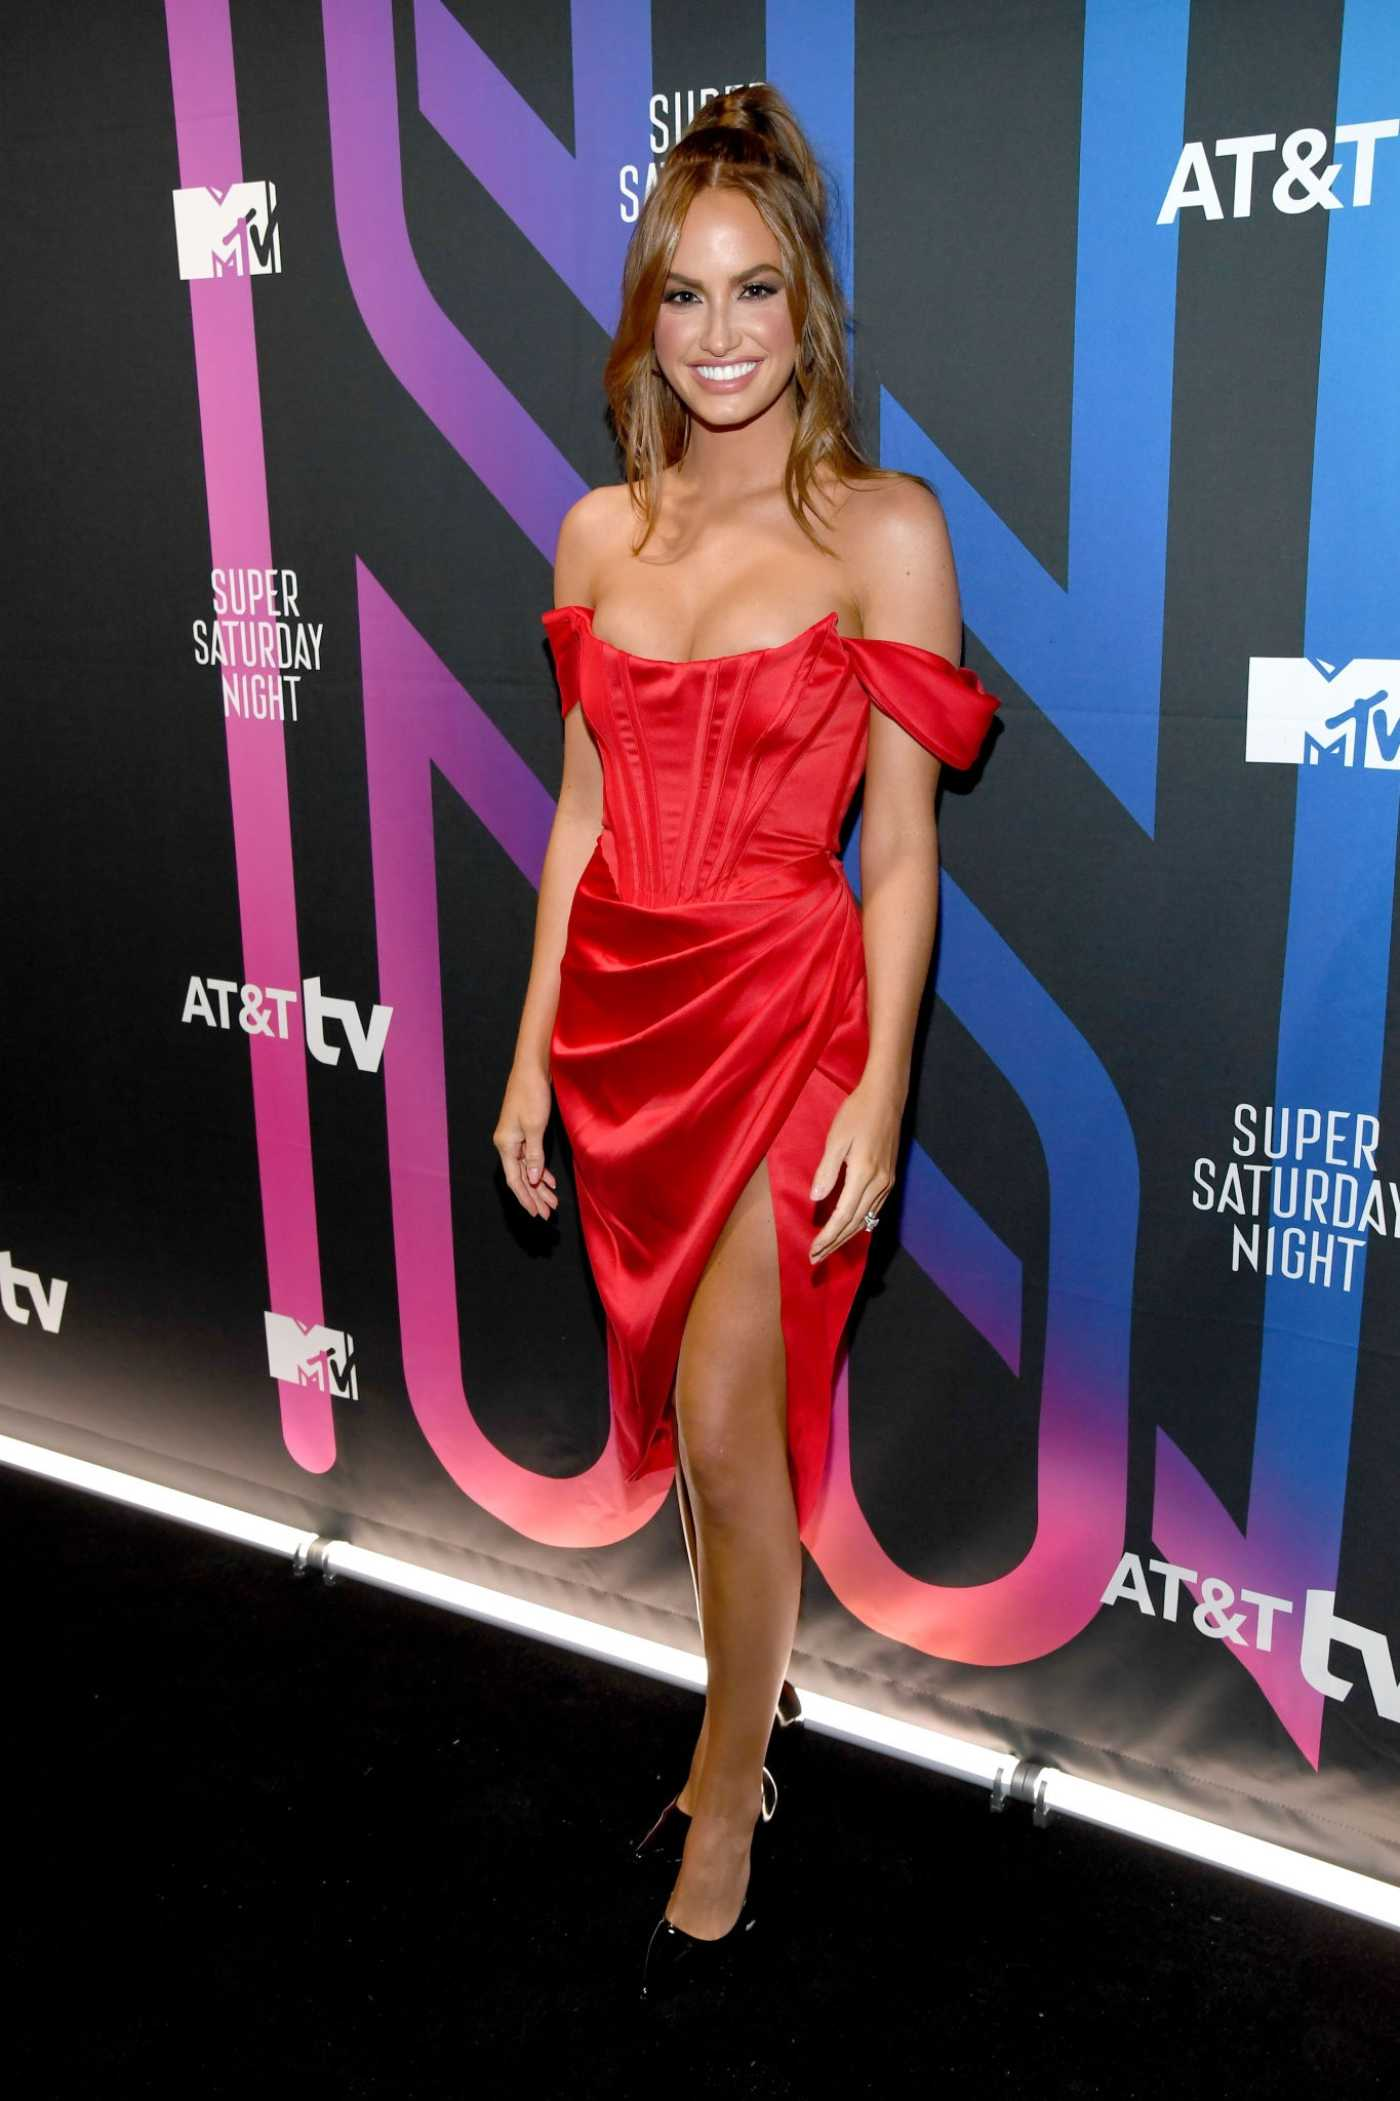 Haley Kalil Attends AT&T TV Super Saturday Night in Miami 02/01/2020